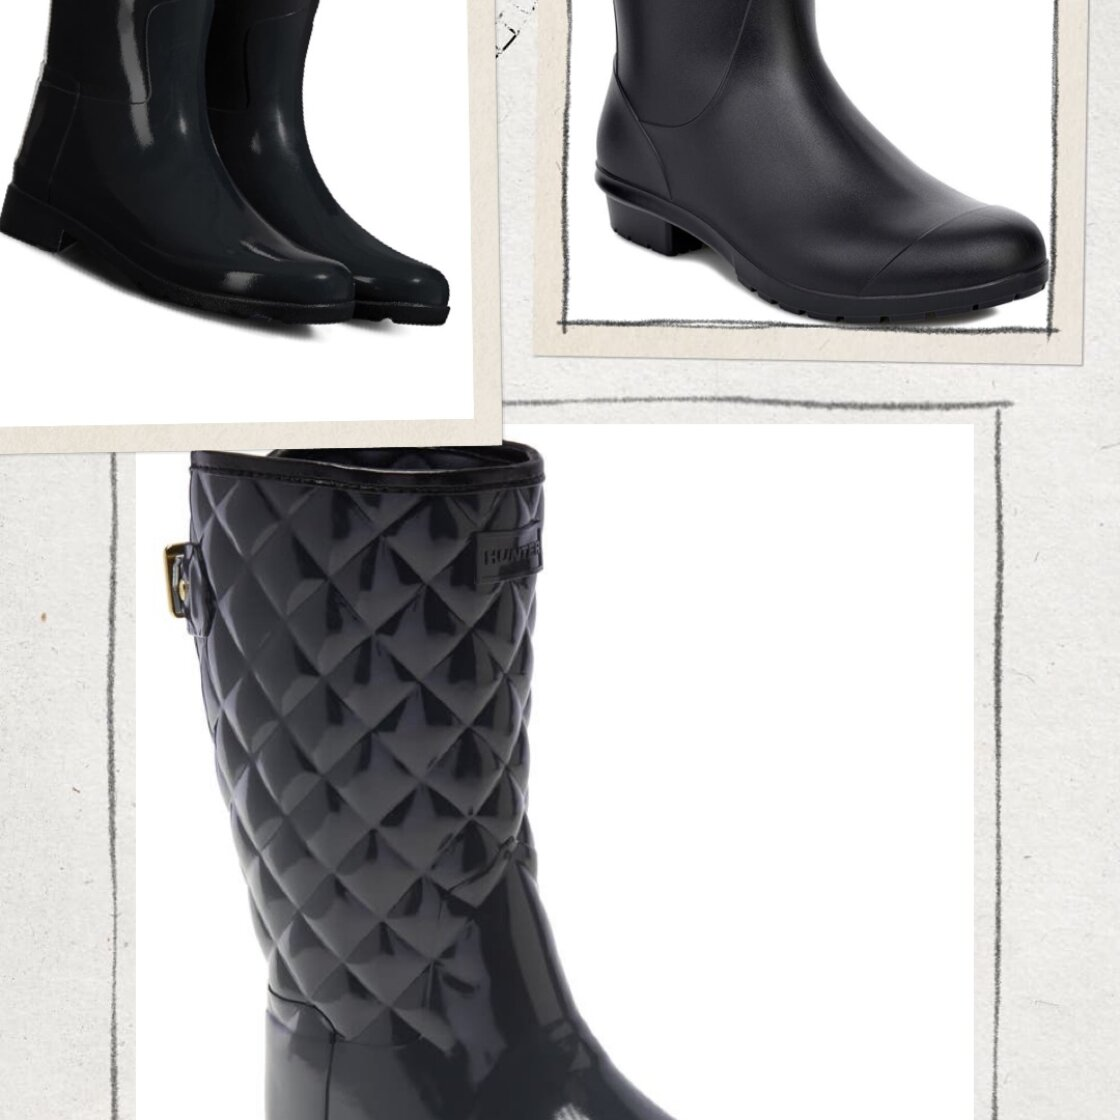 Planning On Buying A New Pair Of Mid-Calf Boots? Here's All You Need To Know